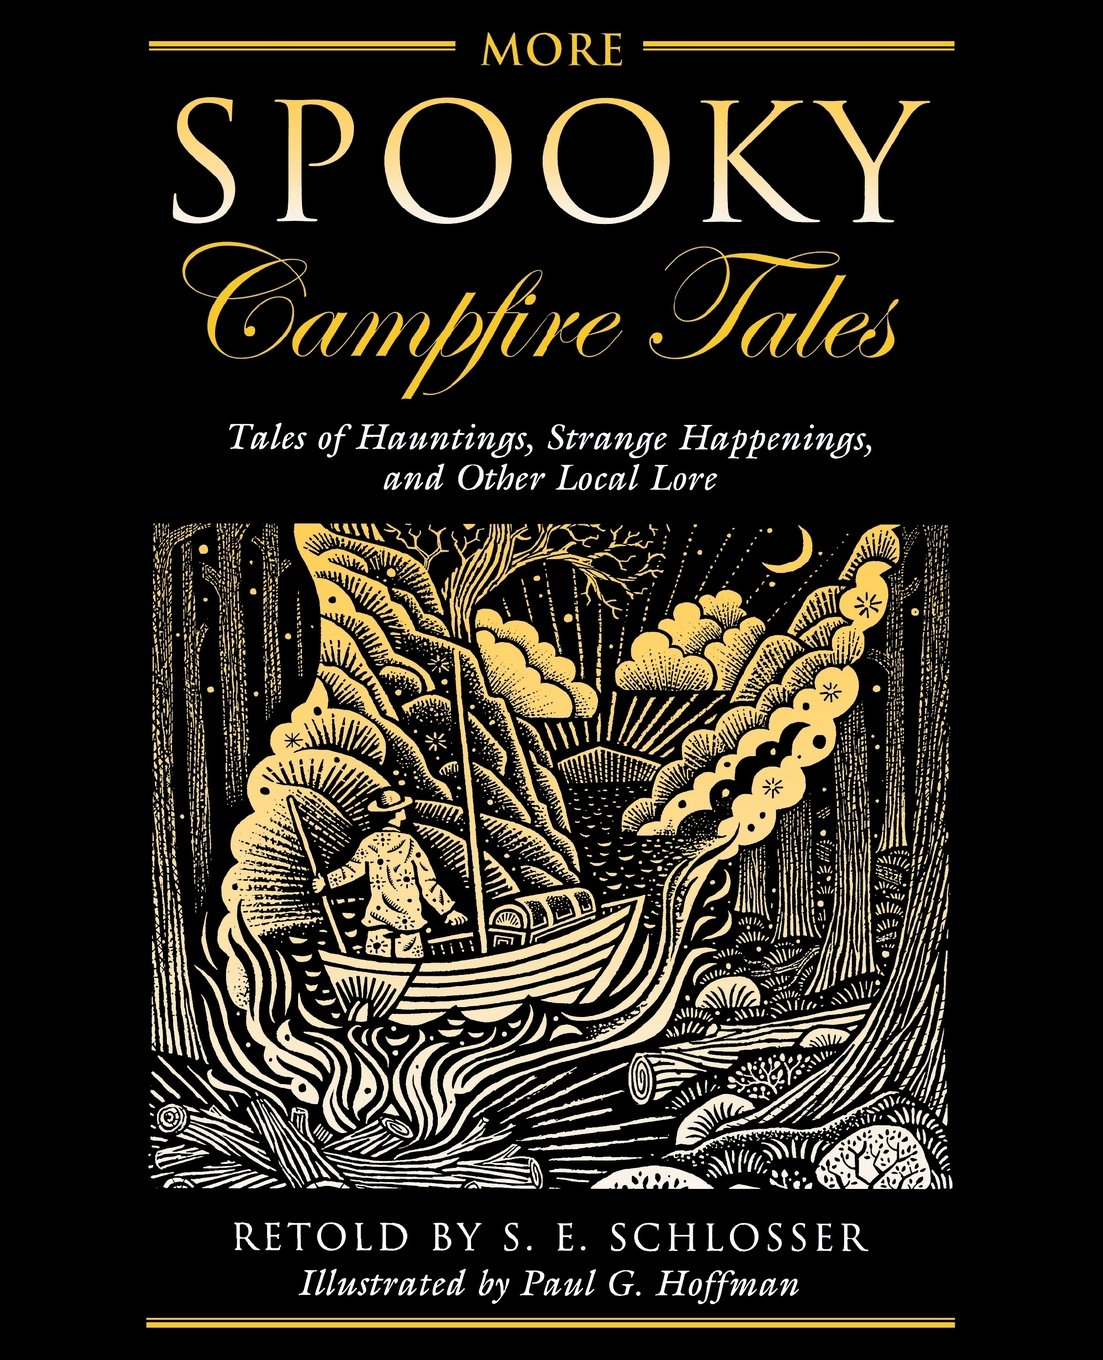 Read Online More Spooky Campfire Tales: Tales Of Hauntings, Strange Happenings, And Other Local Lore pdf epub